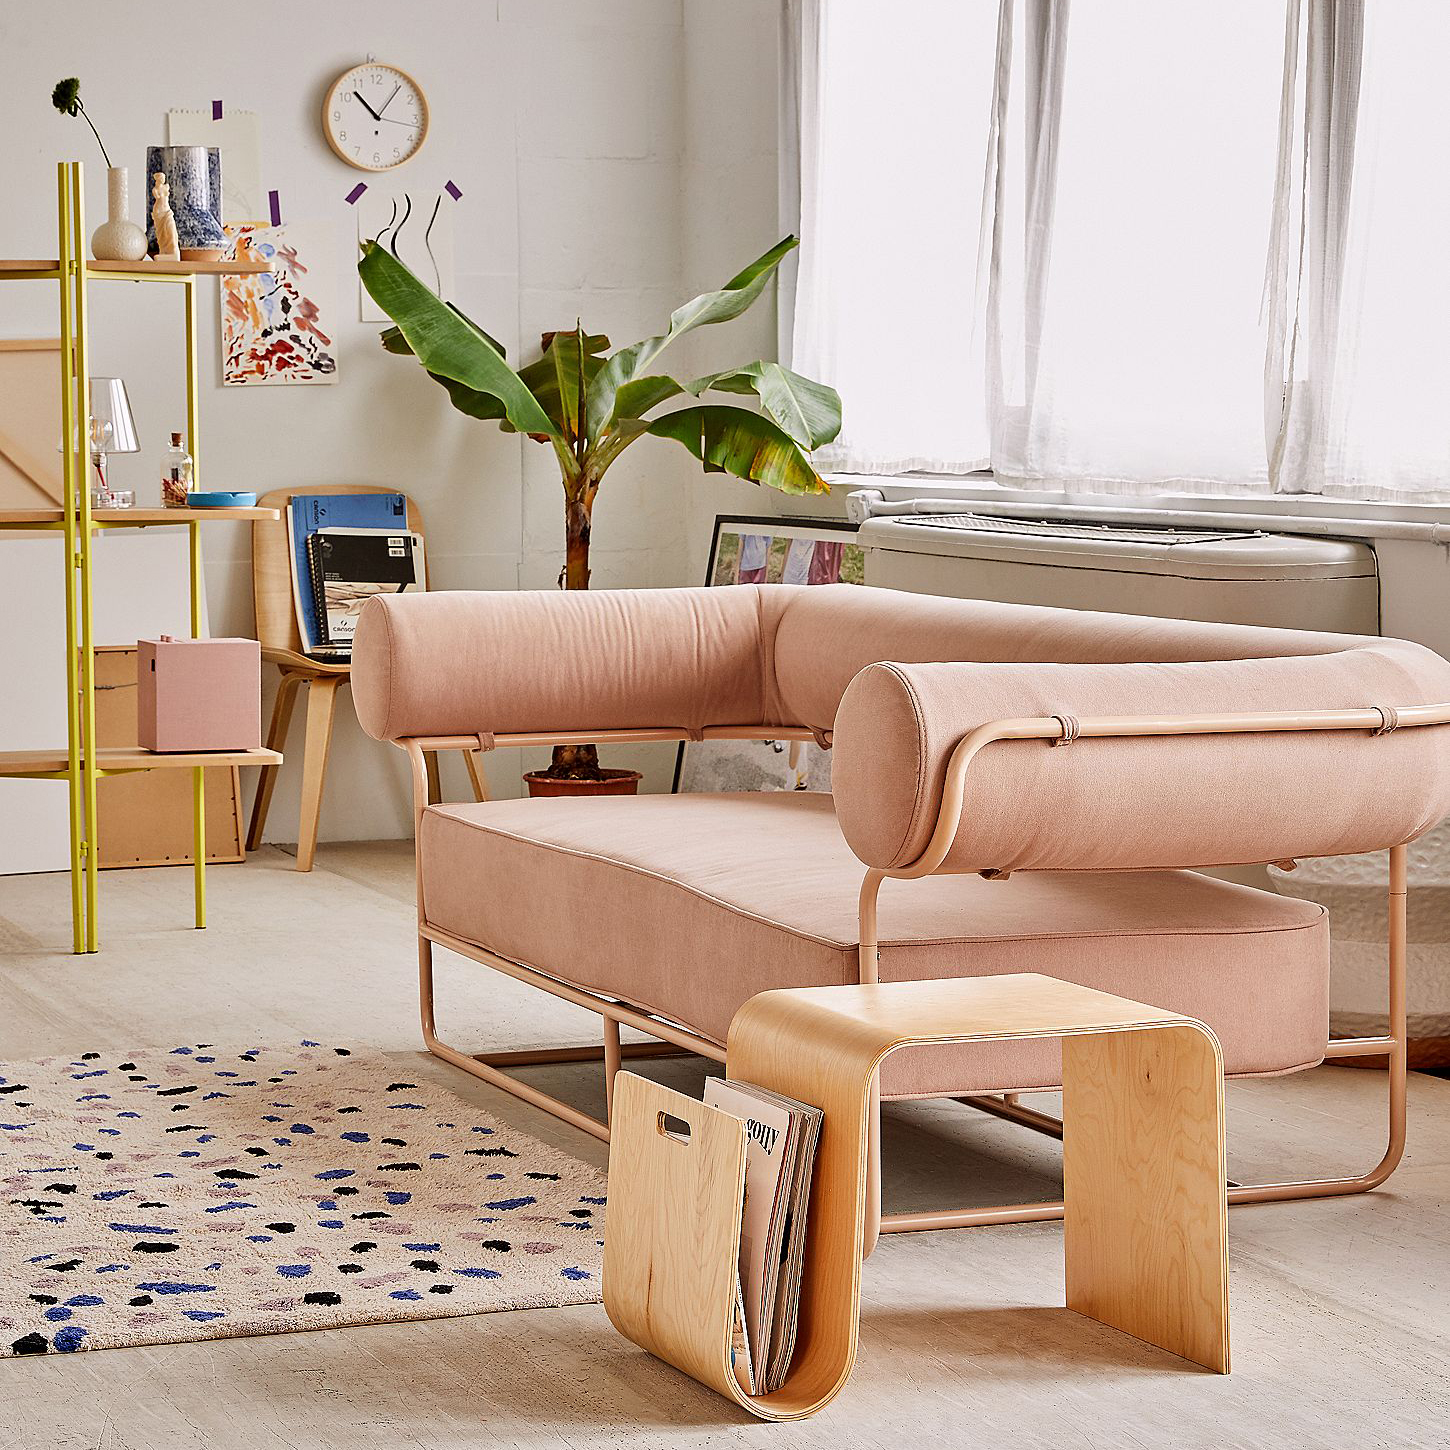 Stupendous Urban Outfitters Launches Apartment Home Decor Line Shop Bralicious Painted Fabric Chair Ideas Braliciousco